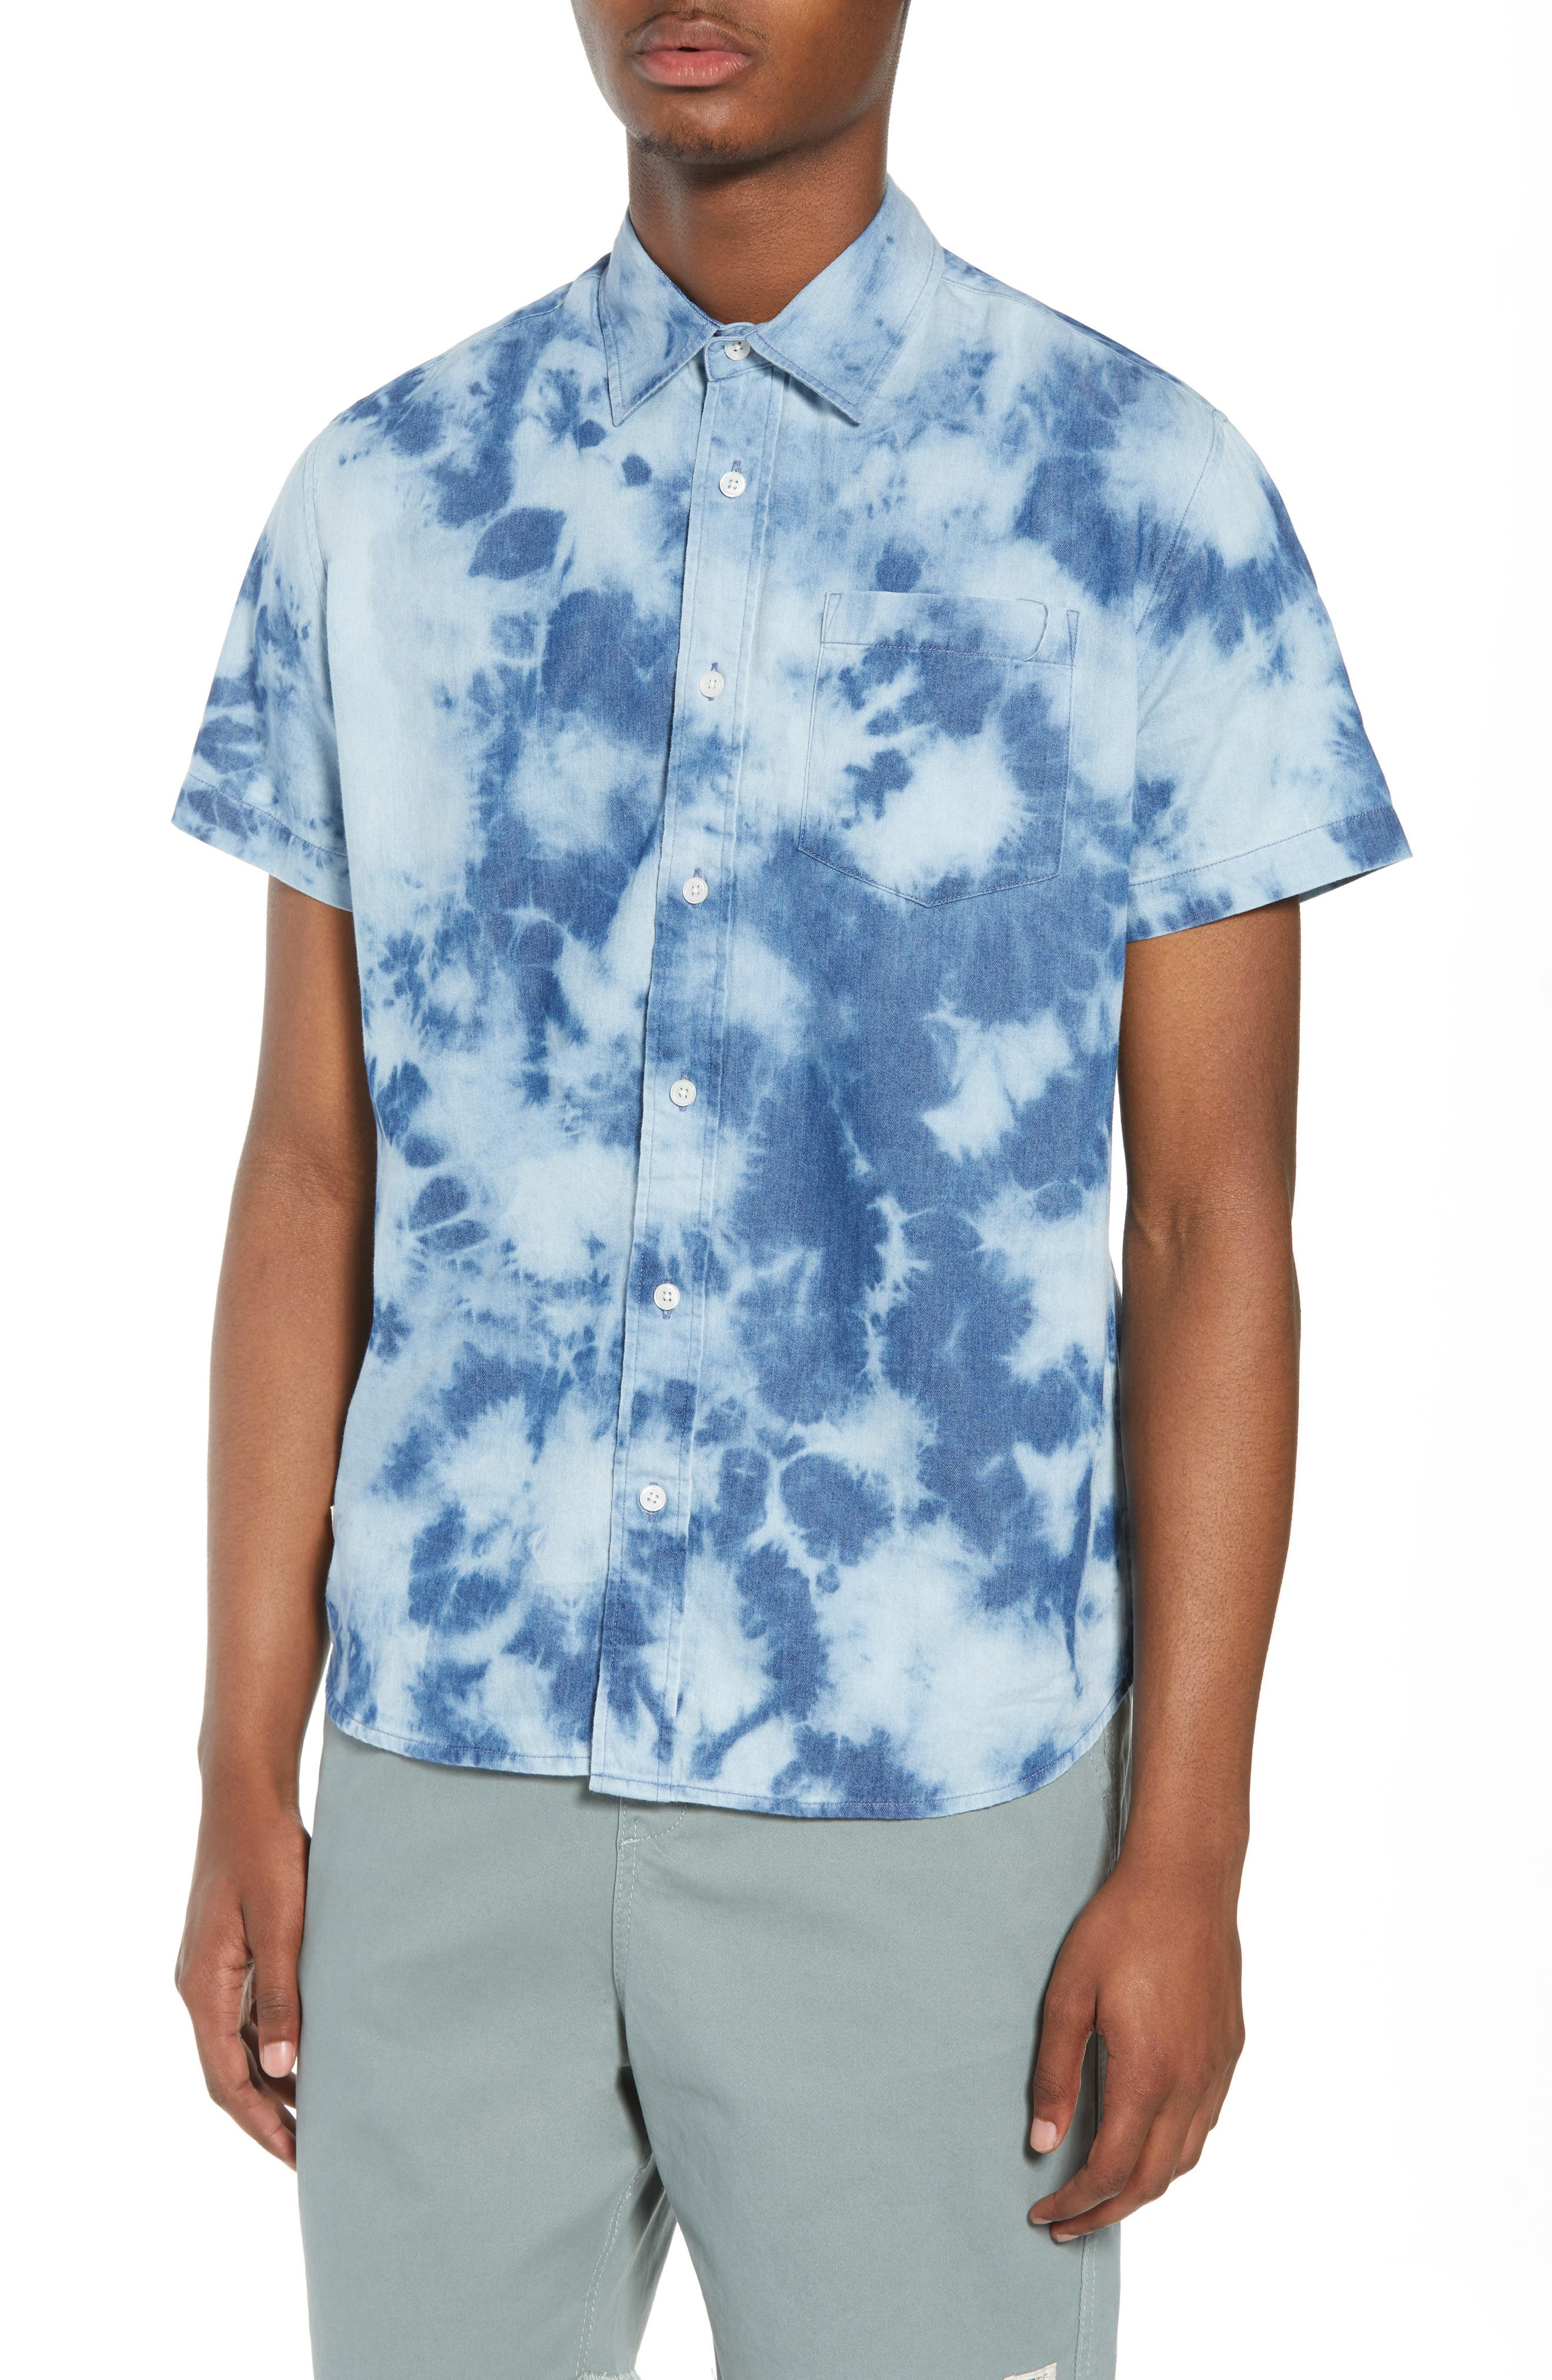 Bleacher Creature Woven Shirt,                             Main thumbnail 1, color,                             Blue